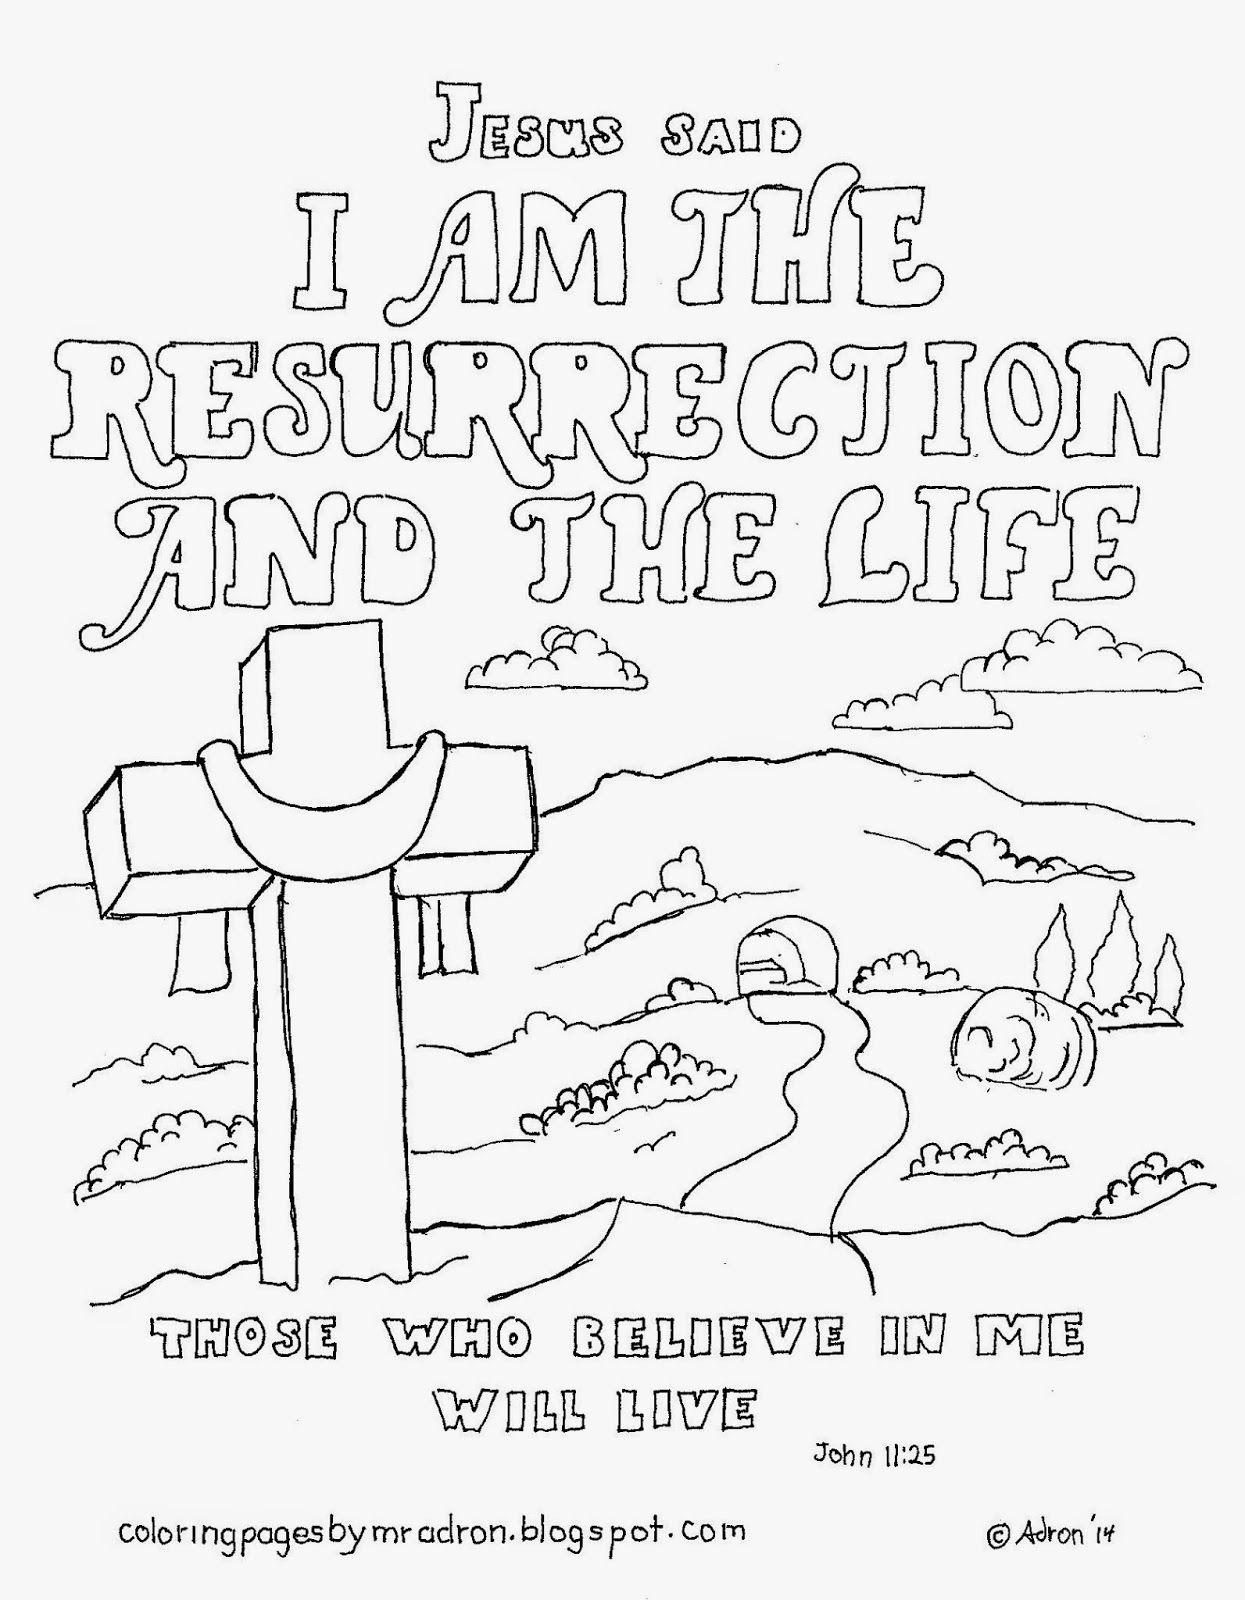 Coloring Pages For Kids By Mr Adron I Am The Resurrection And The Life Coloring P Sunday School Coloring Pages Bible Verse Coloring Page Bible Verse Coloring